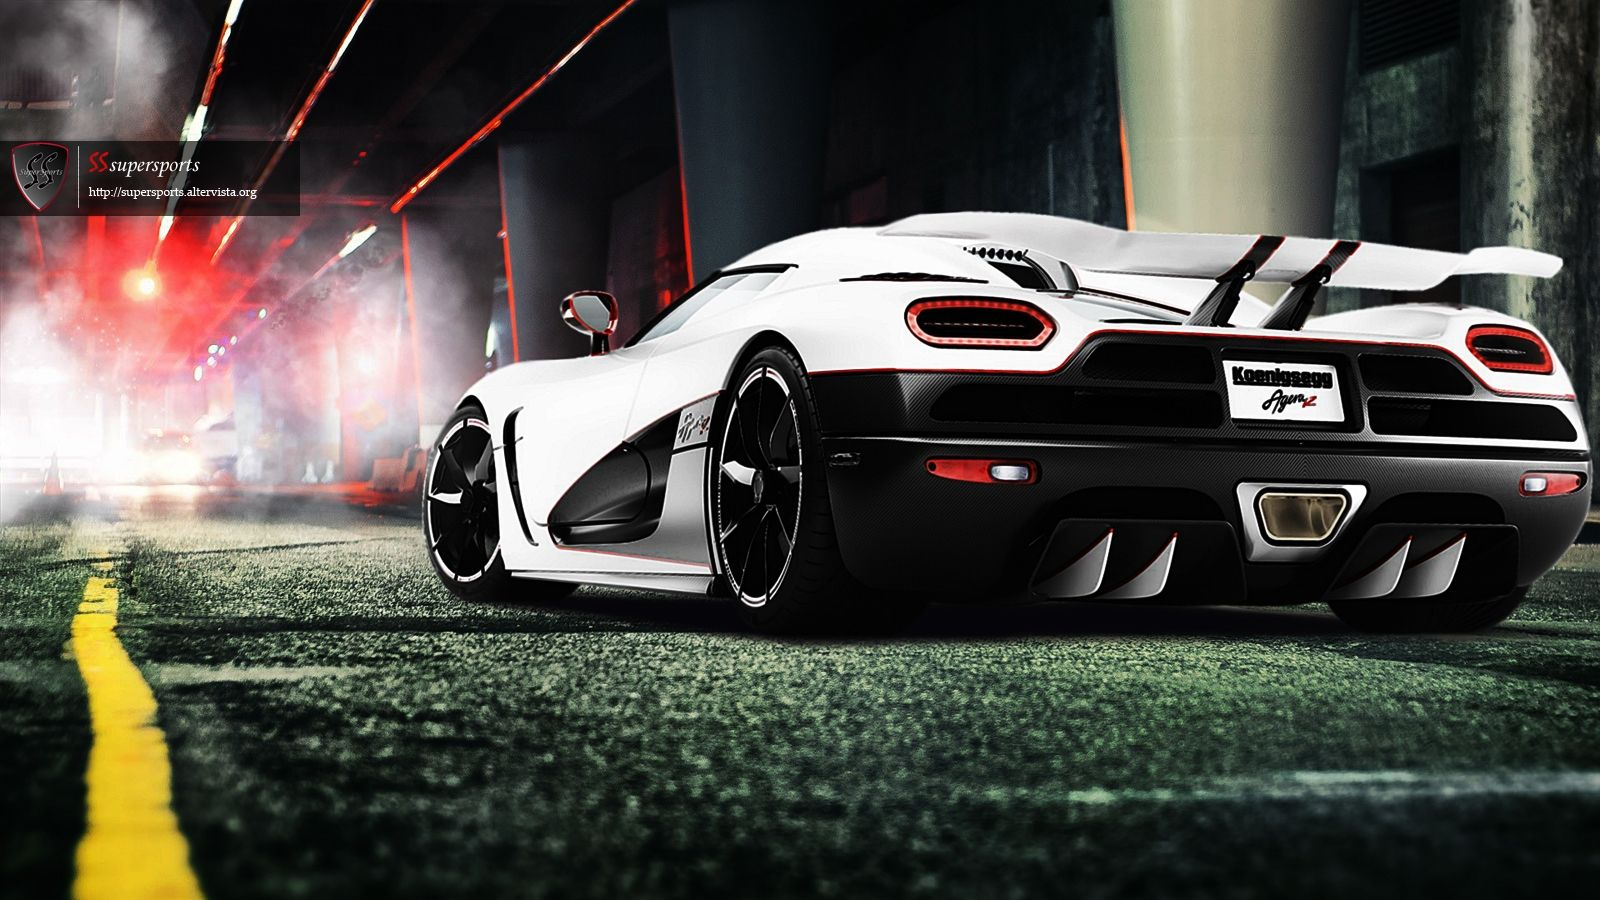 2014 Koenigsegg Agera R Picture Wallpaper Is Hd Wallpaper For